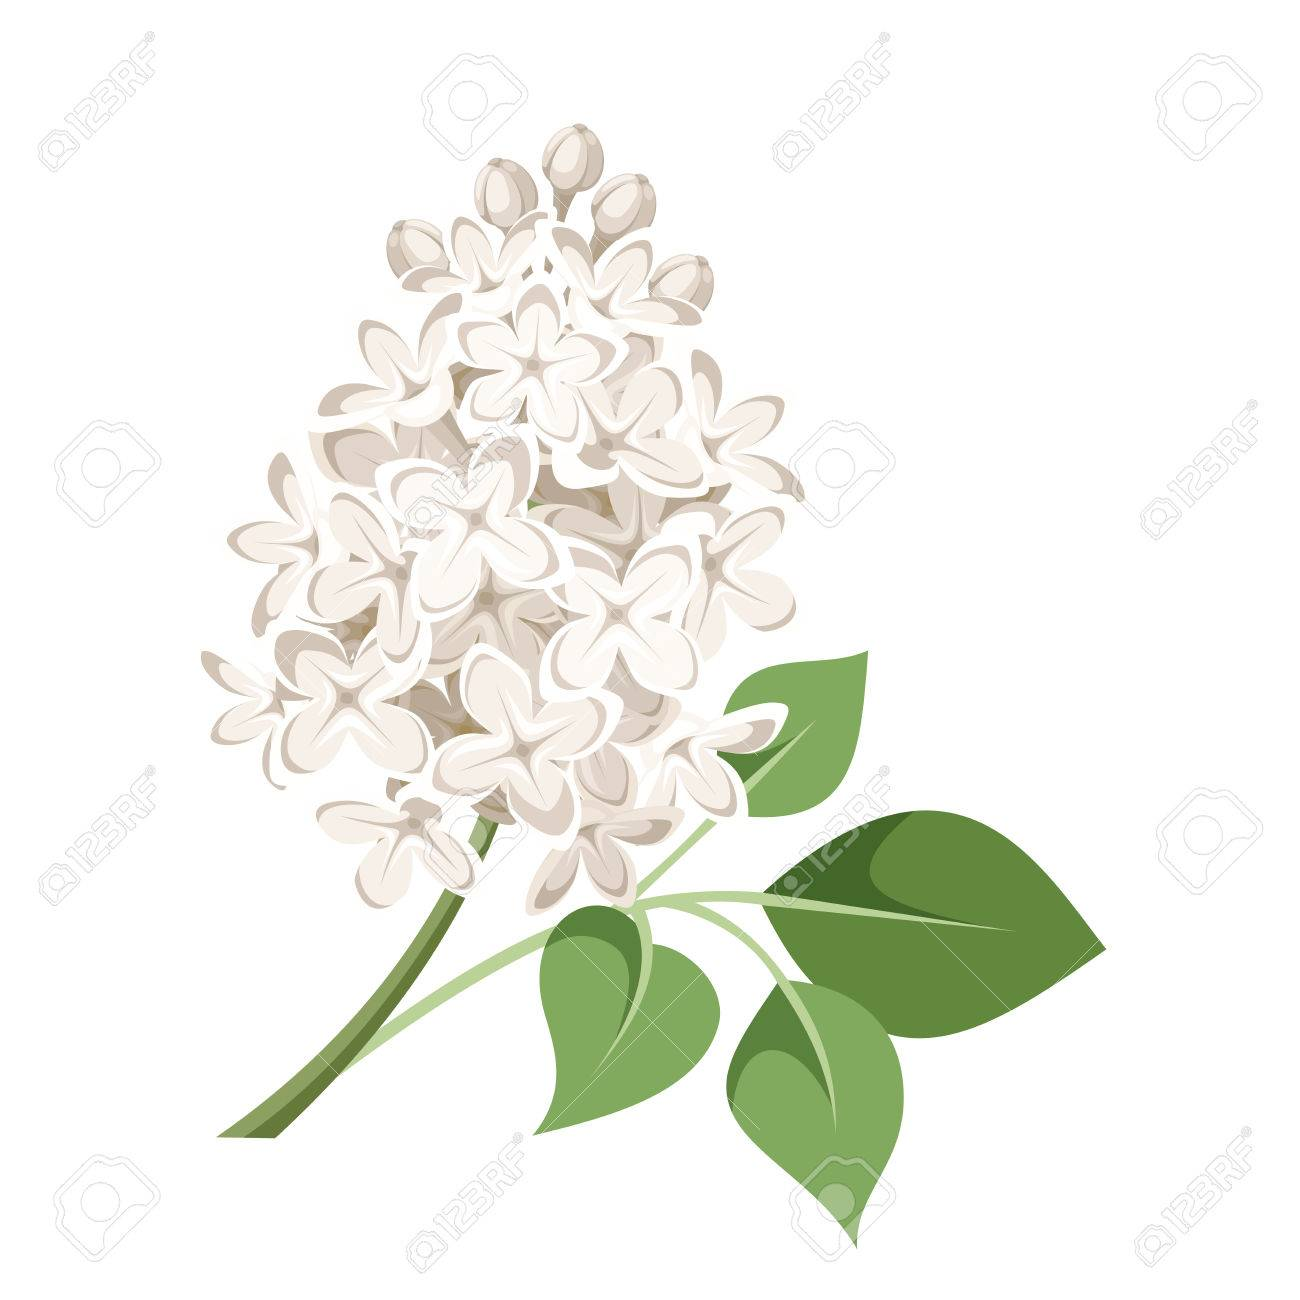 Branch Of White Lilac Flowers Vector Illustration Royalty Free